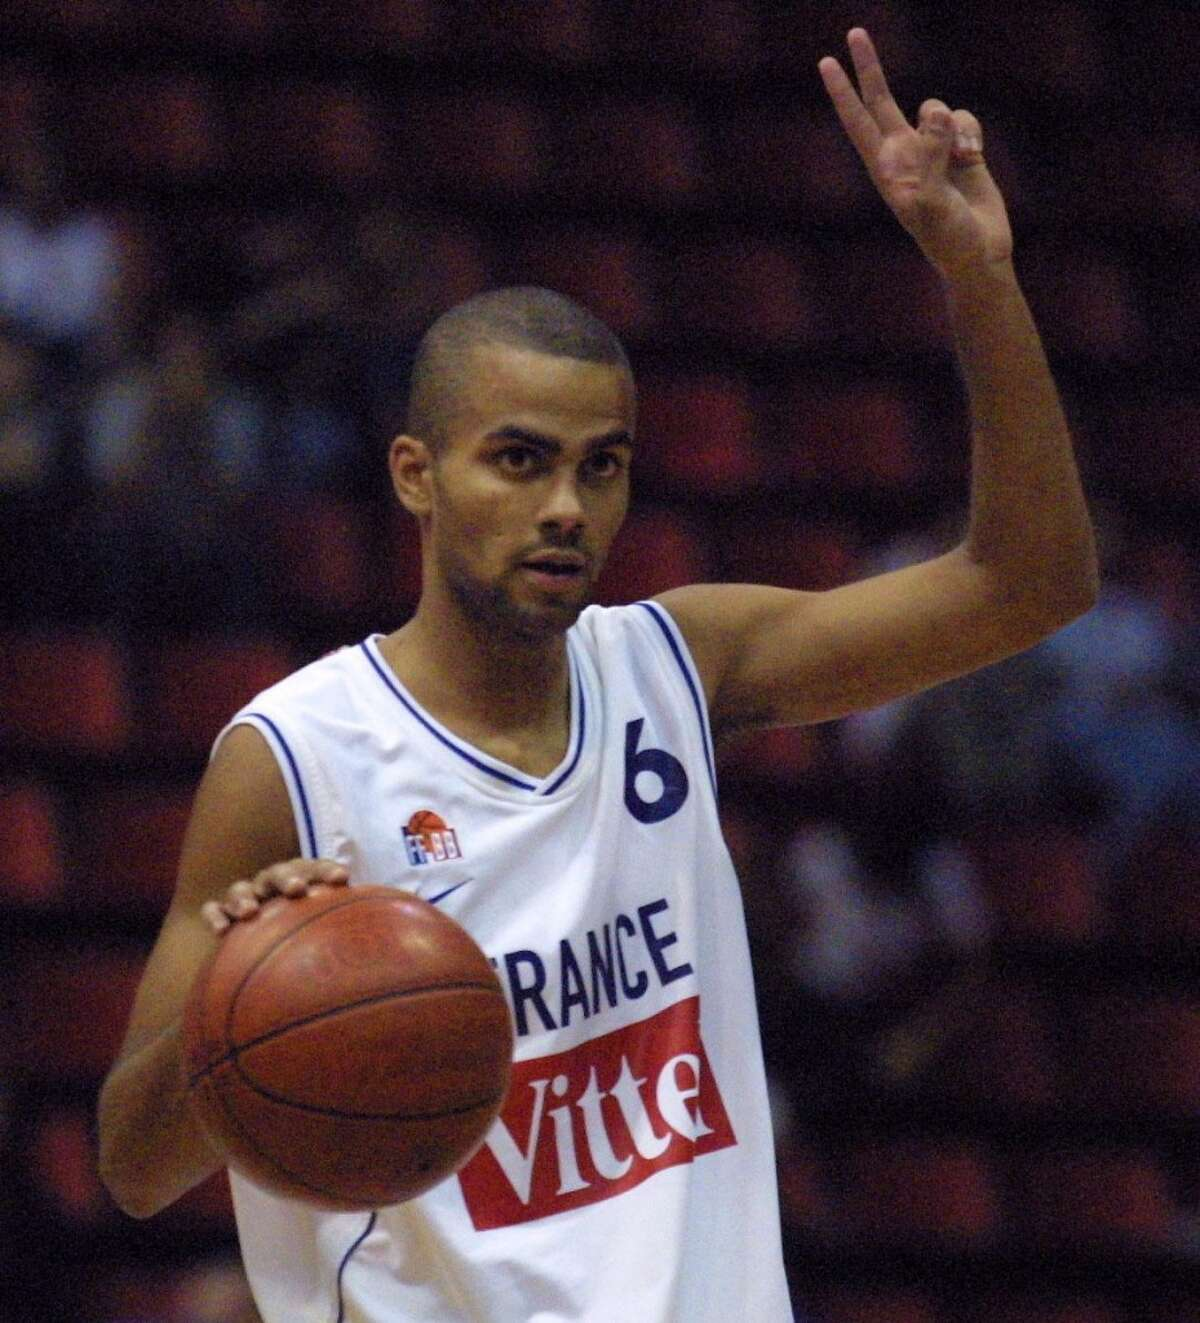 2.Before being drafted by the Spurs, Parker played in the French basketball league for two years.